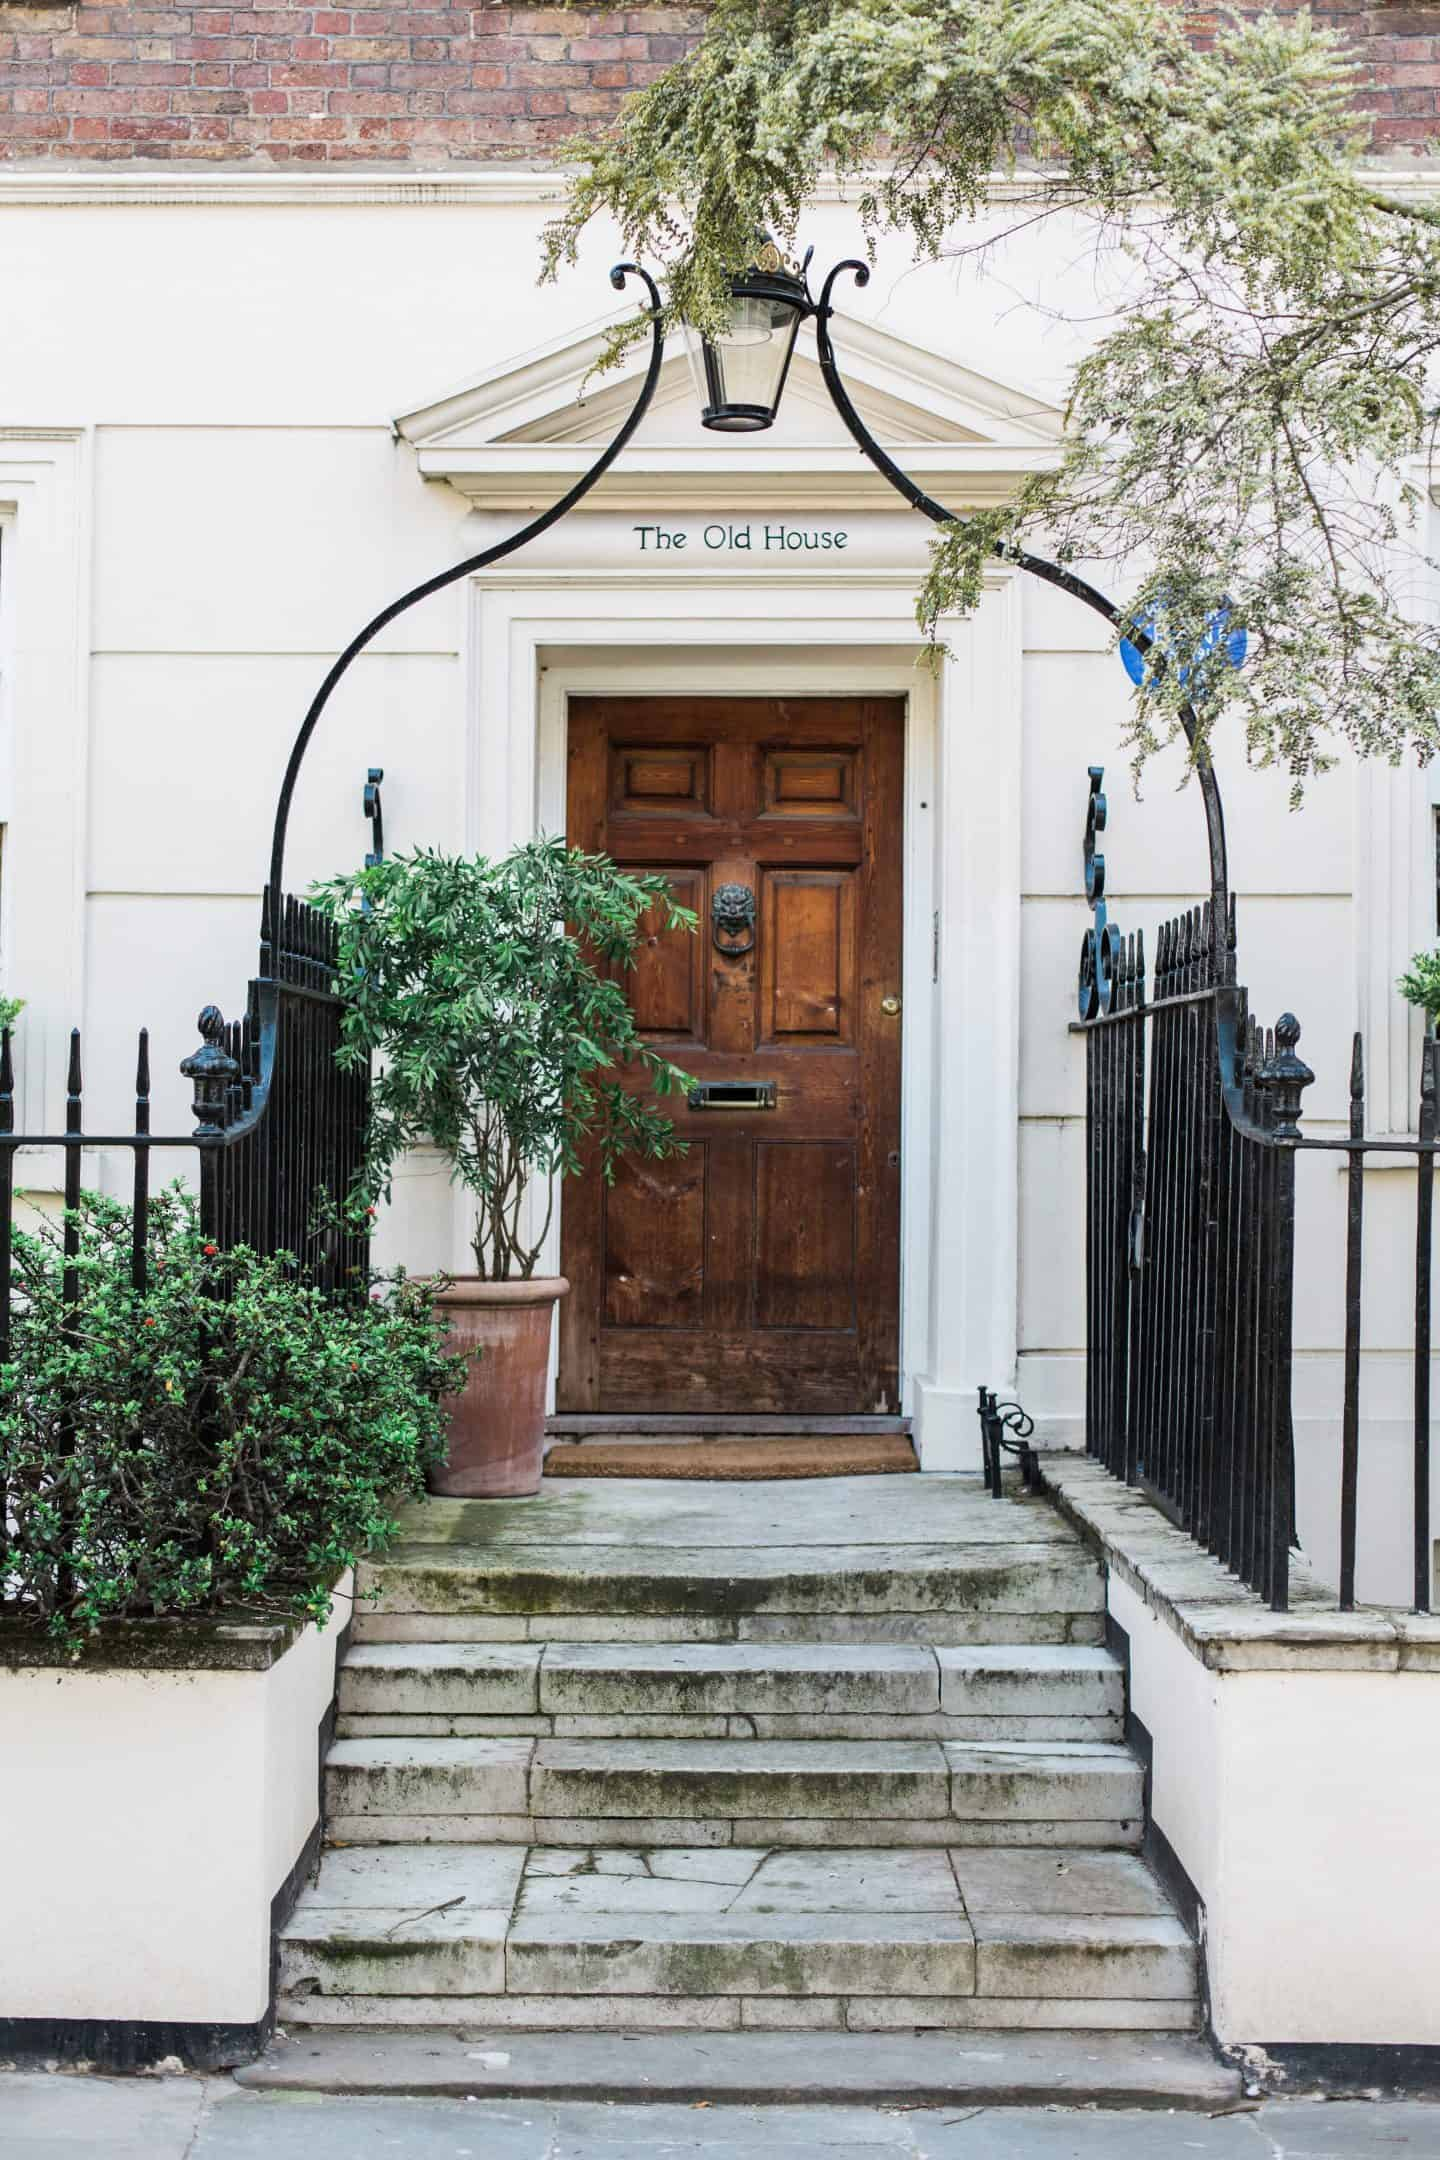 Kensington London Neighborhood Guide